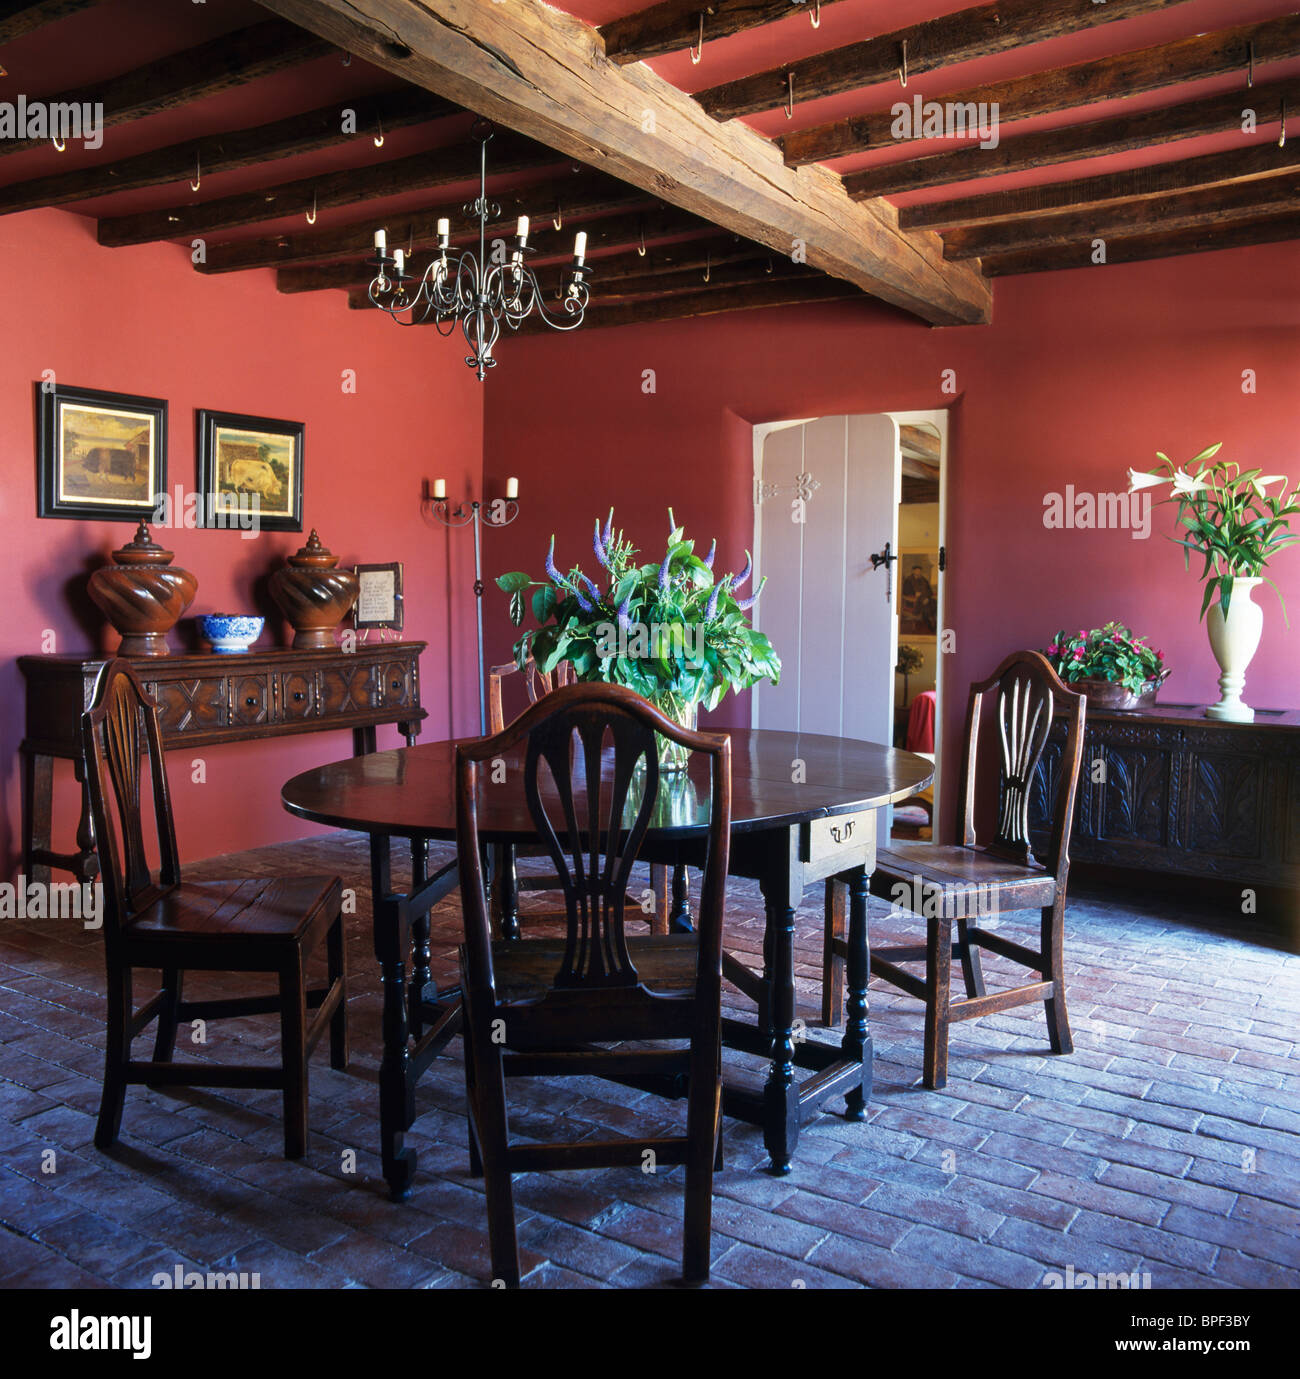 Antique Oak Table And Chairs In Dark Pink Country Dining Room With Old Brick  Flooring And Wood Beamed Ceiling